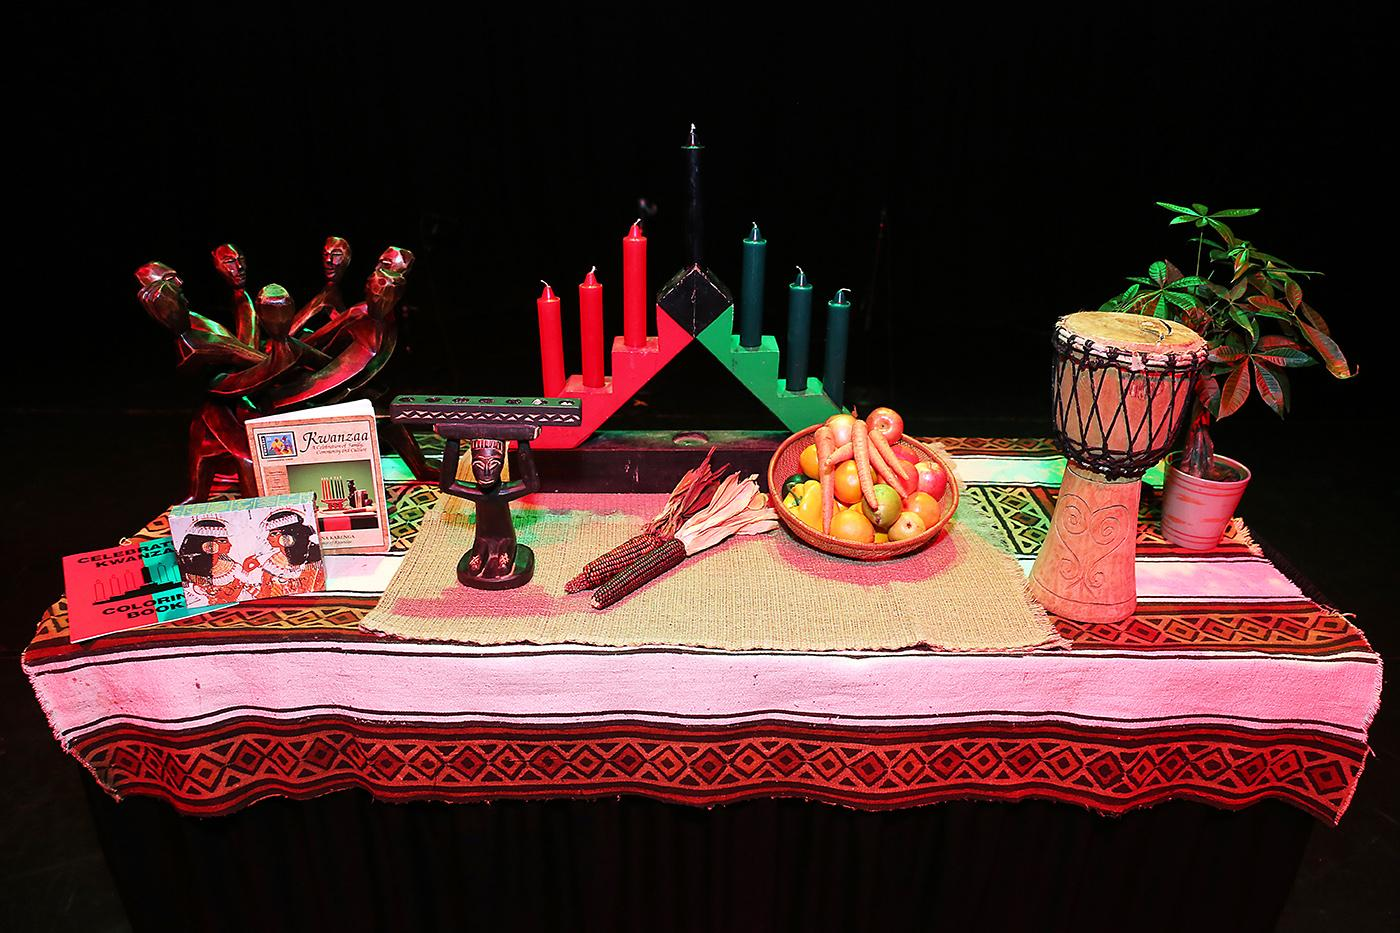 A Kwanzaa table at Chicago's DuSable Museum of African American History, including a kinara